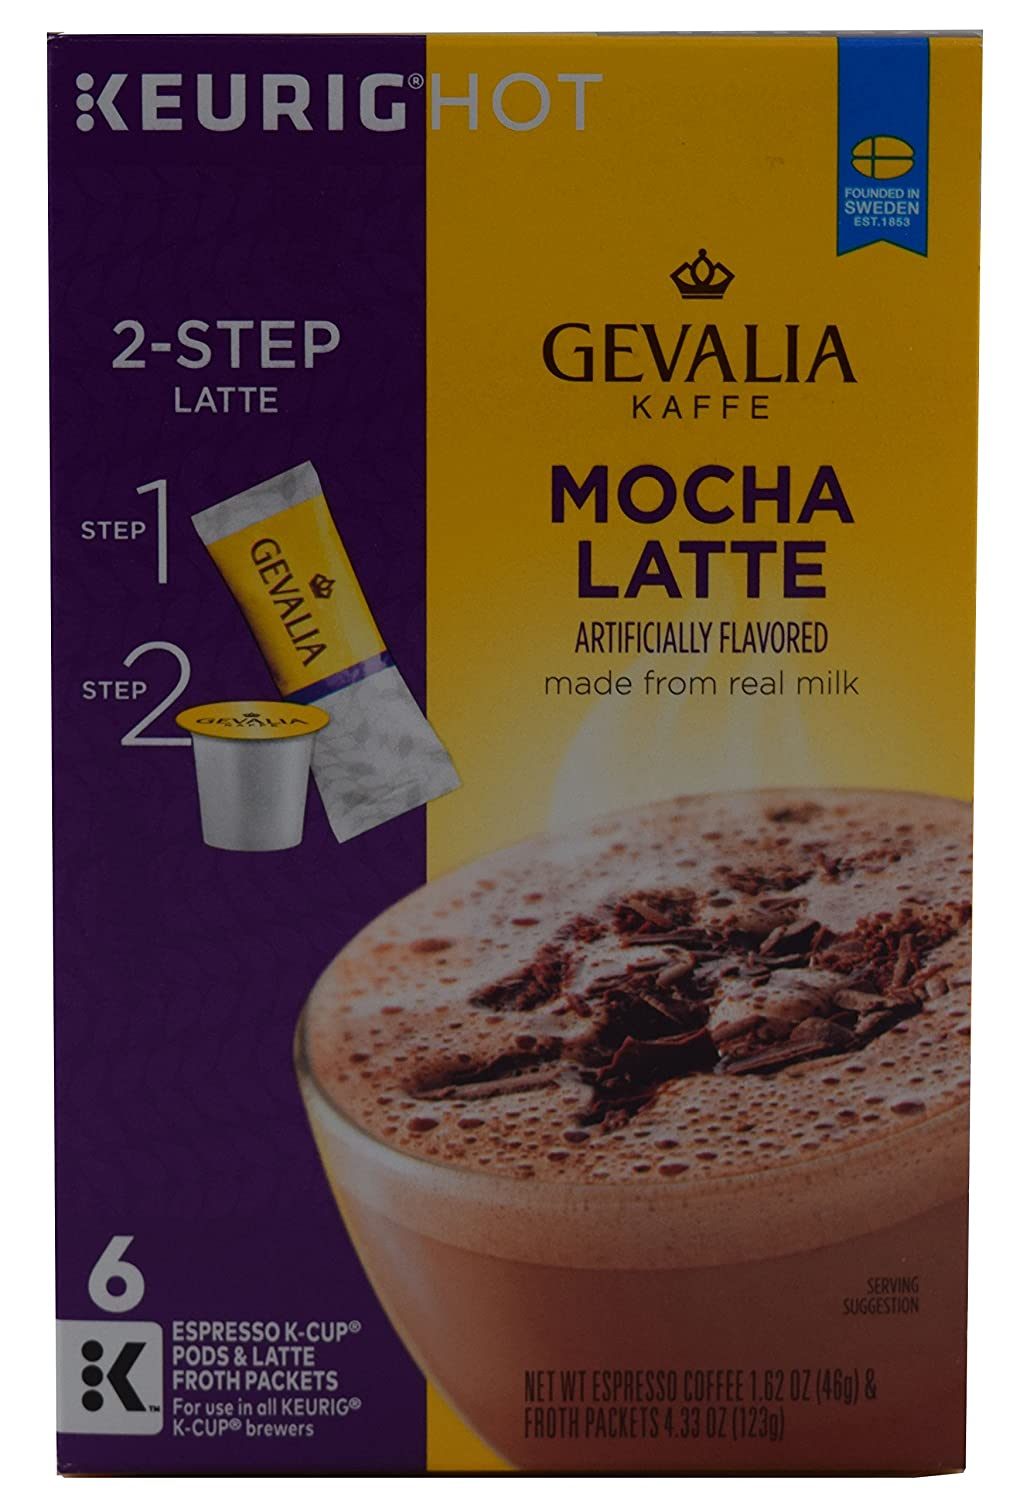 Gevalia, 2-Step K-Cup & Froth Packets, 6 Count, 5.6oz Box (Pack of 3) (Mocha Latte)